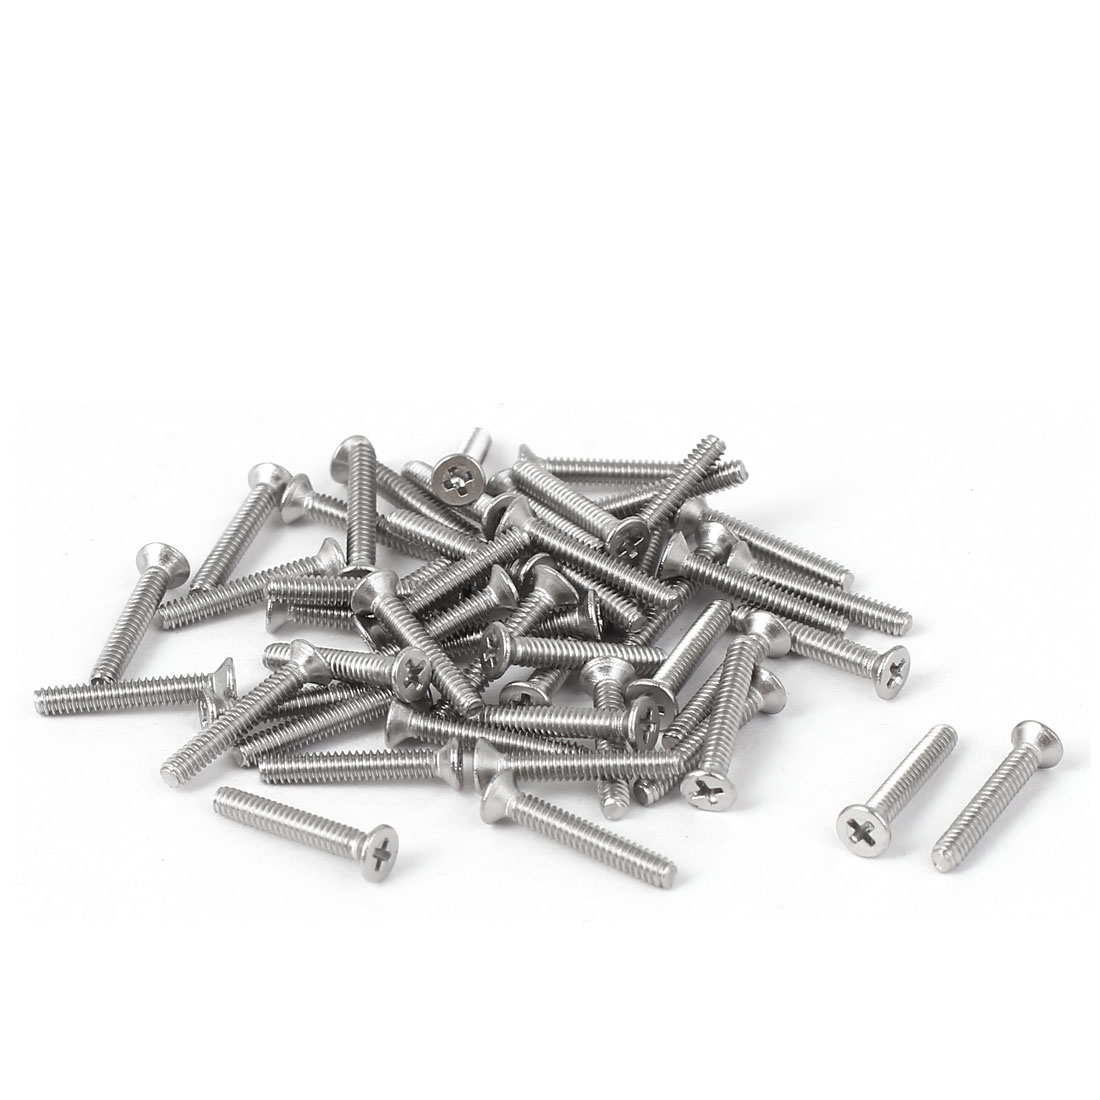 50 Pcs M1.6x10mm 316 Stainless Steel Countersunk Phillips Machine Screws